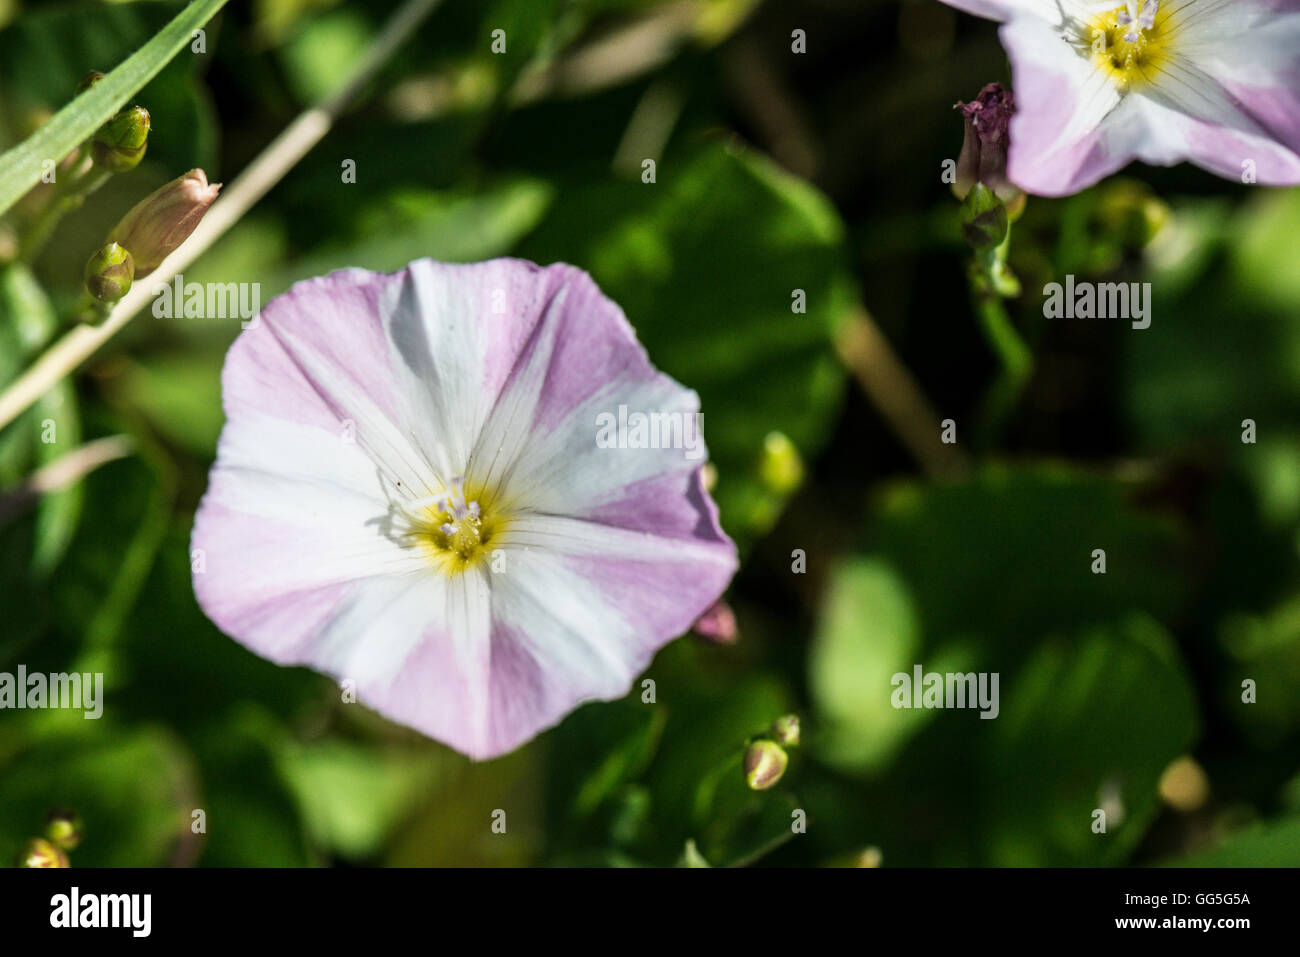 A close up of a flower of a field bindweed (Convolvulus arvensis) - Stock Image